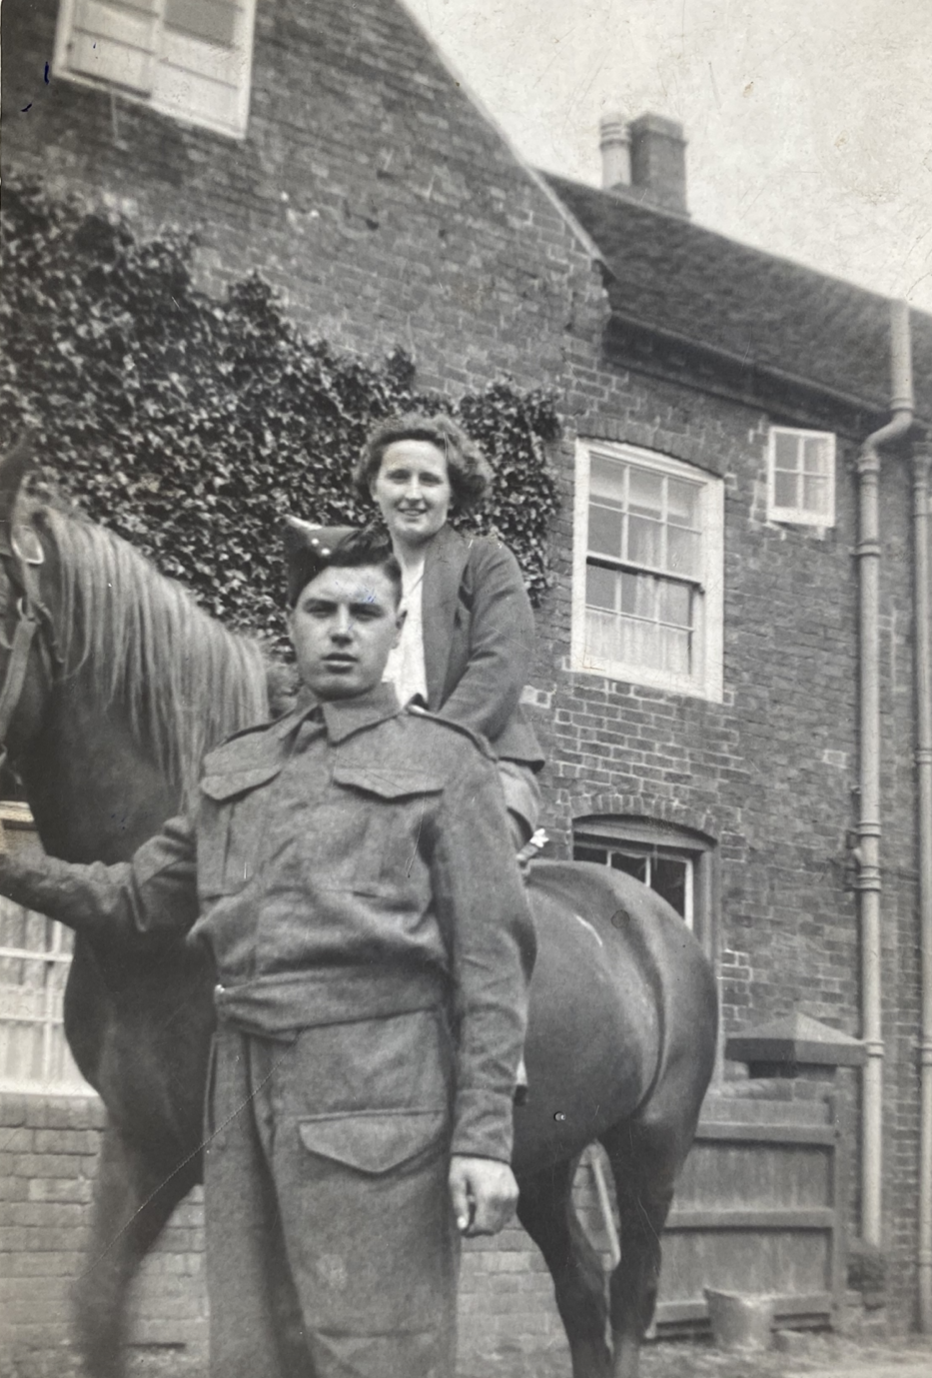 Photo of Tom standing next to woman on horseback, taken on the farm where he worked.